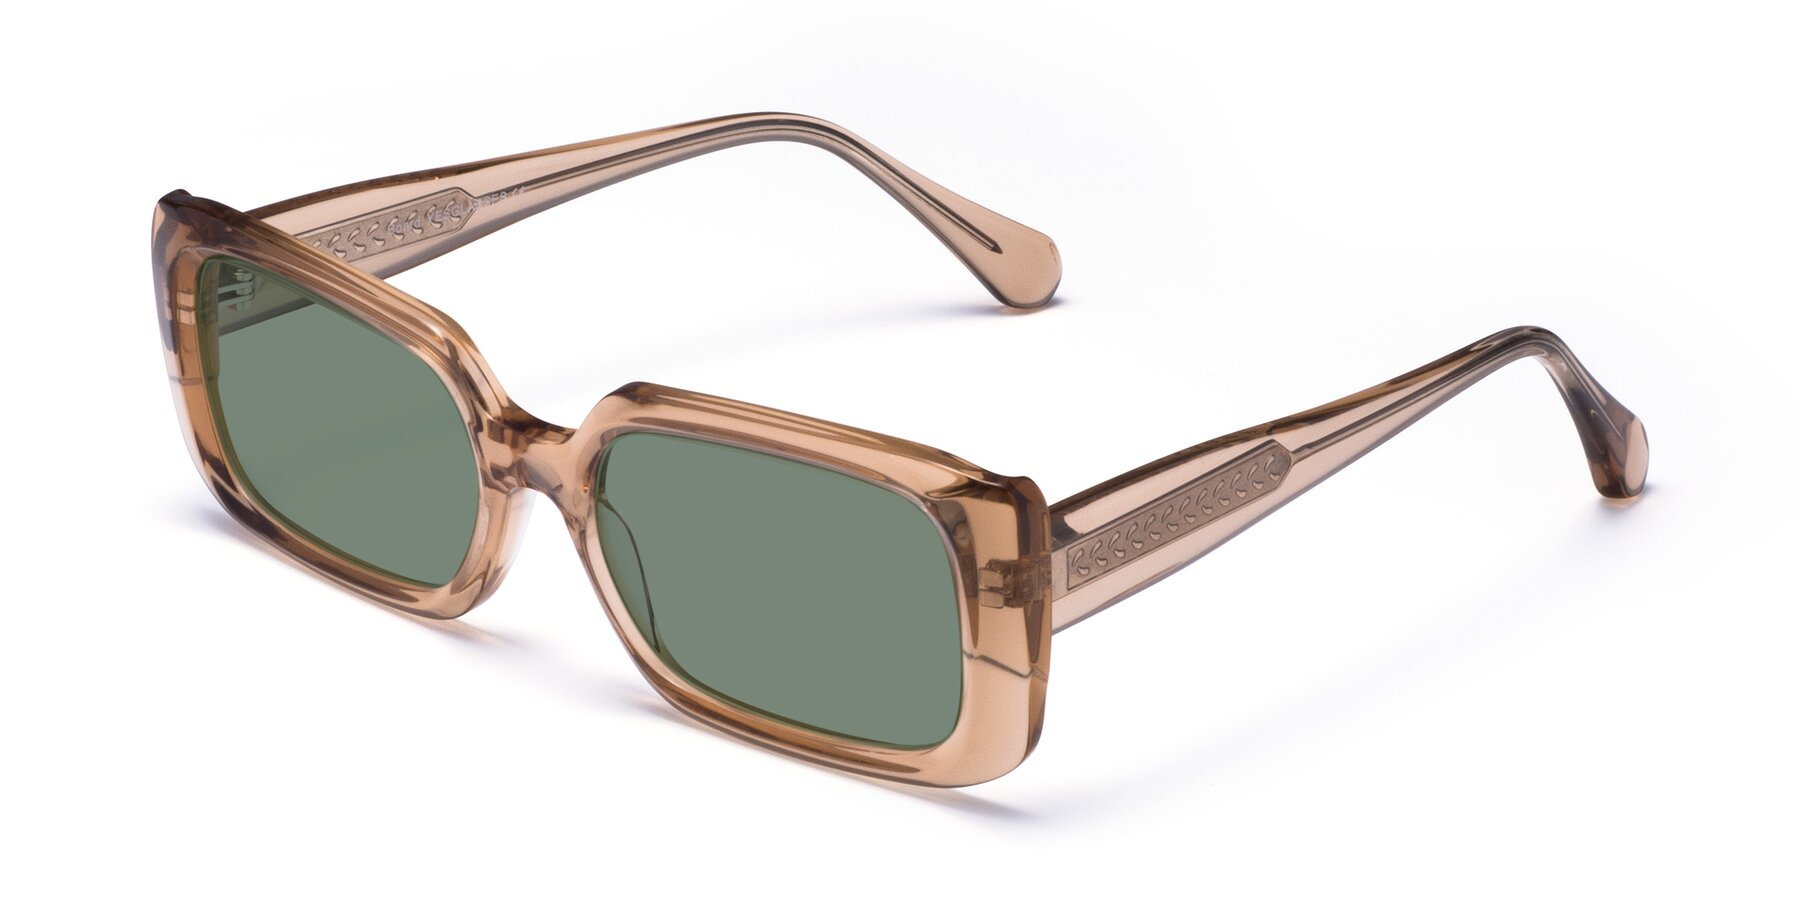 Angle of Board in Caramel with Medium Green Tinted Lenses